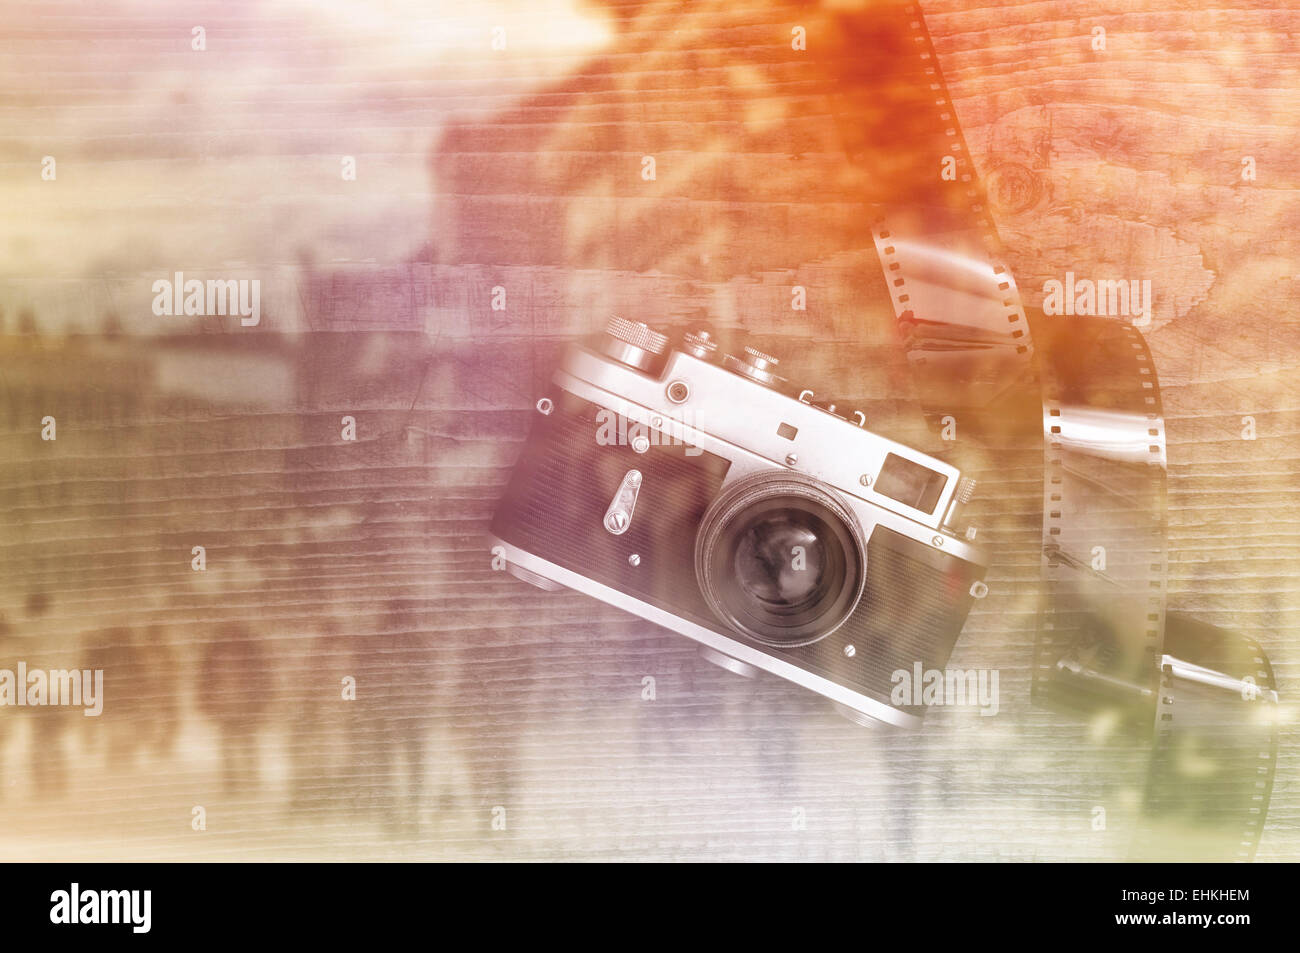 ac0fb1b87af33 Retro style vintage photography camera on a wooden table plate with  overexposed film strip - Stock